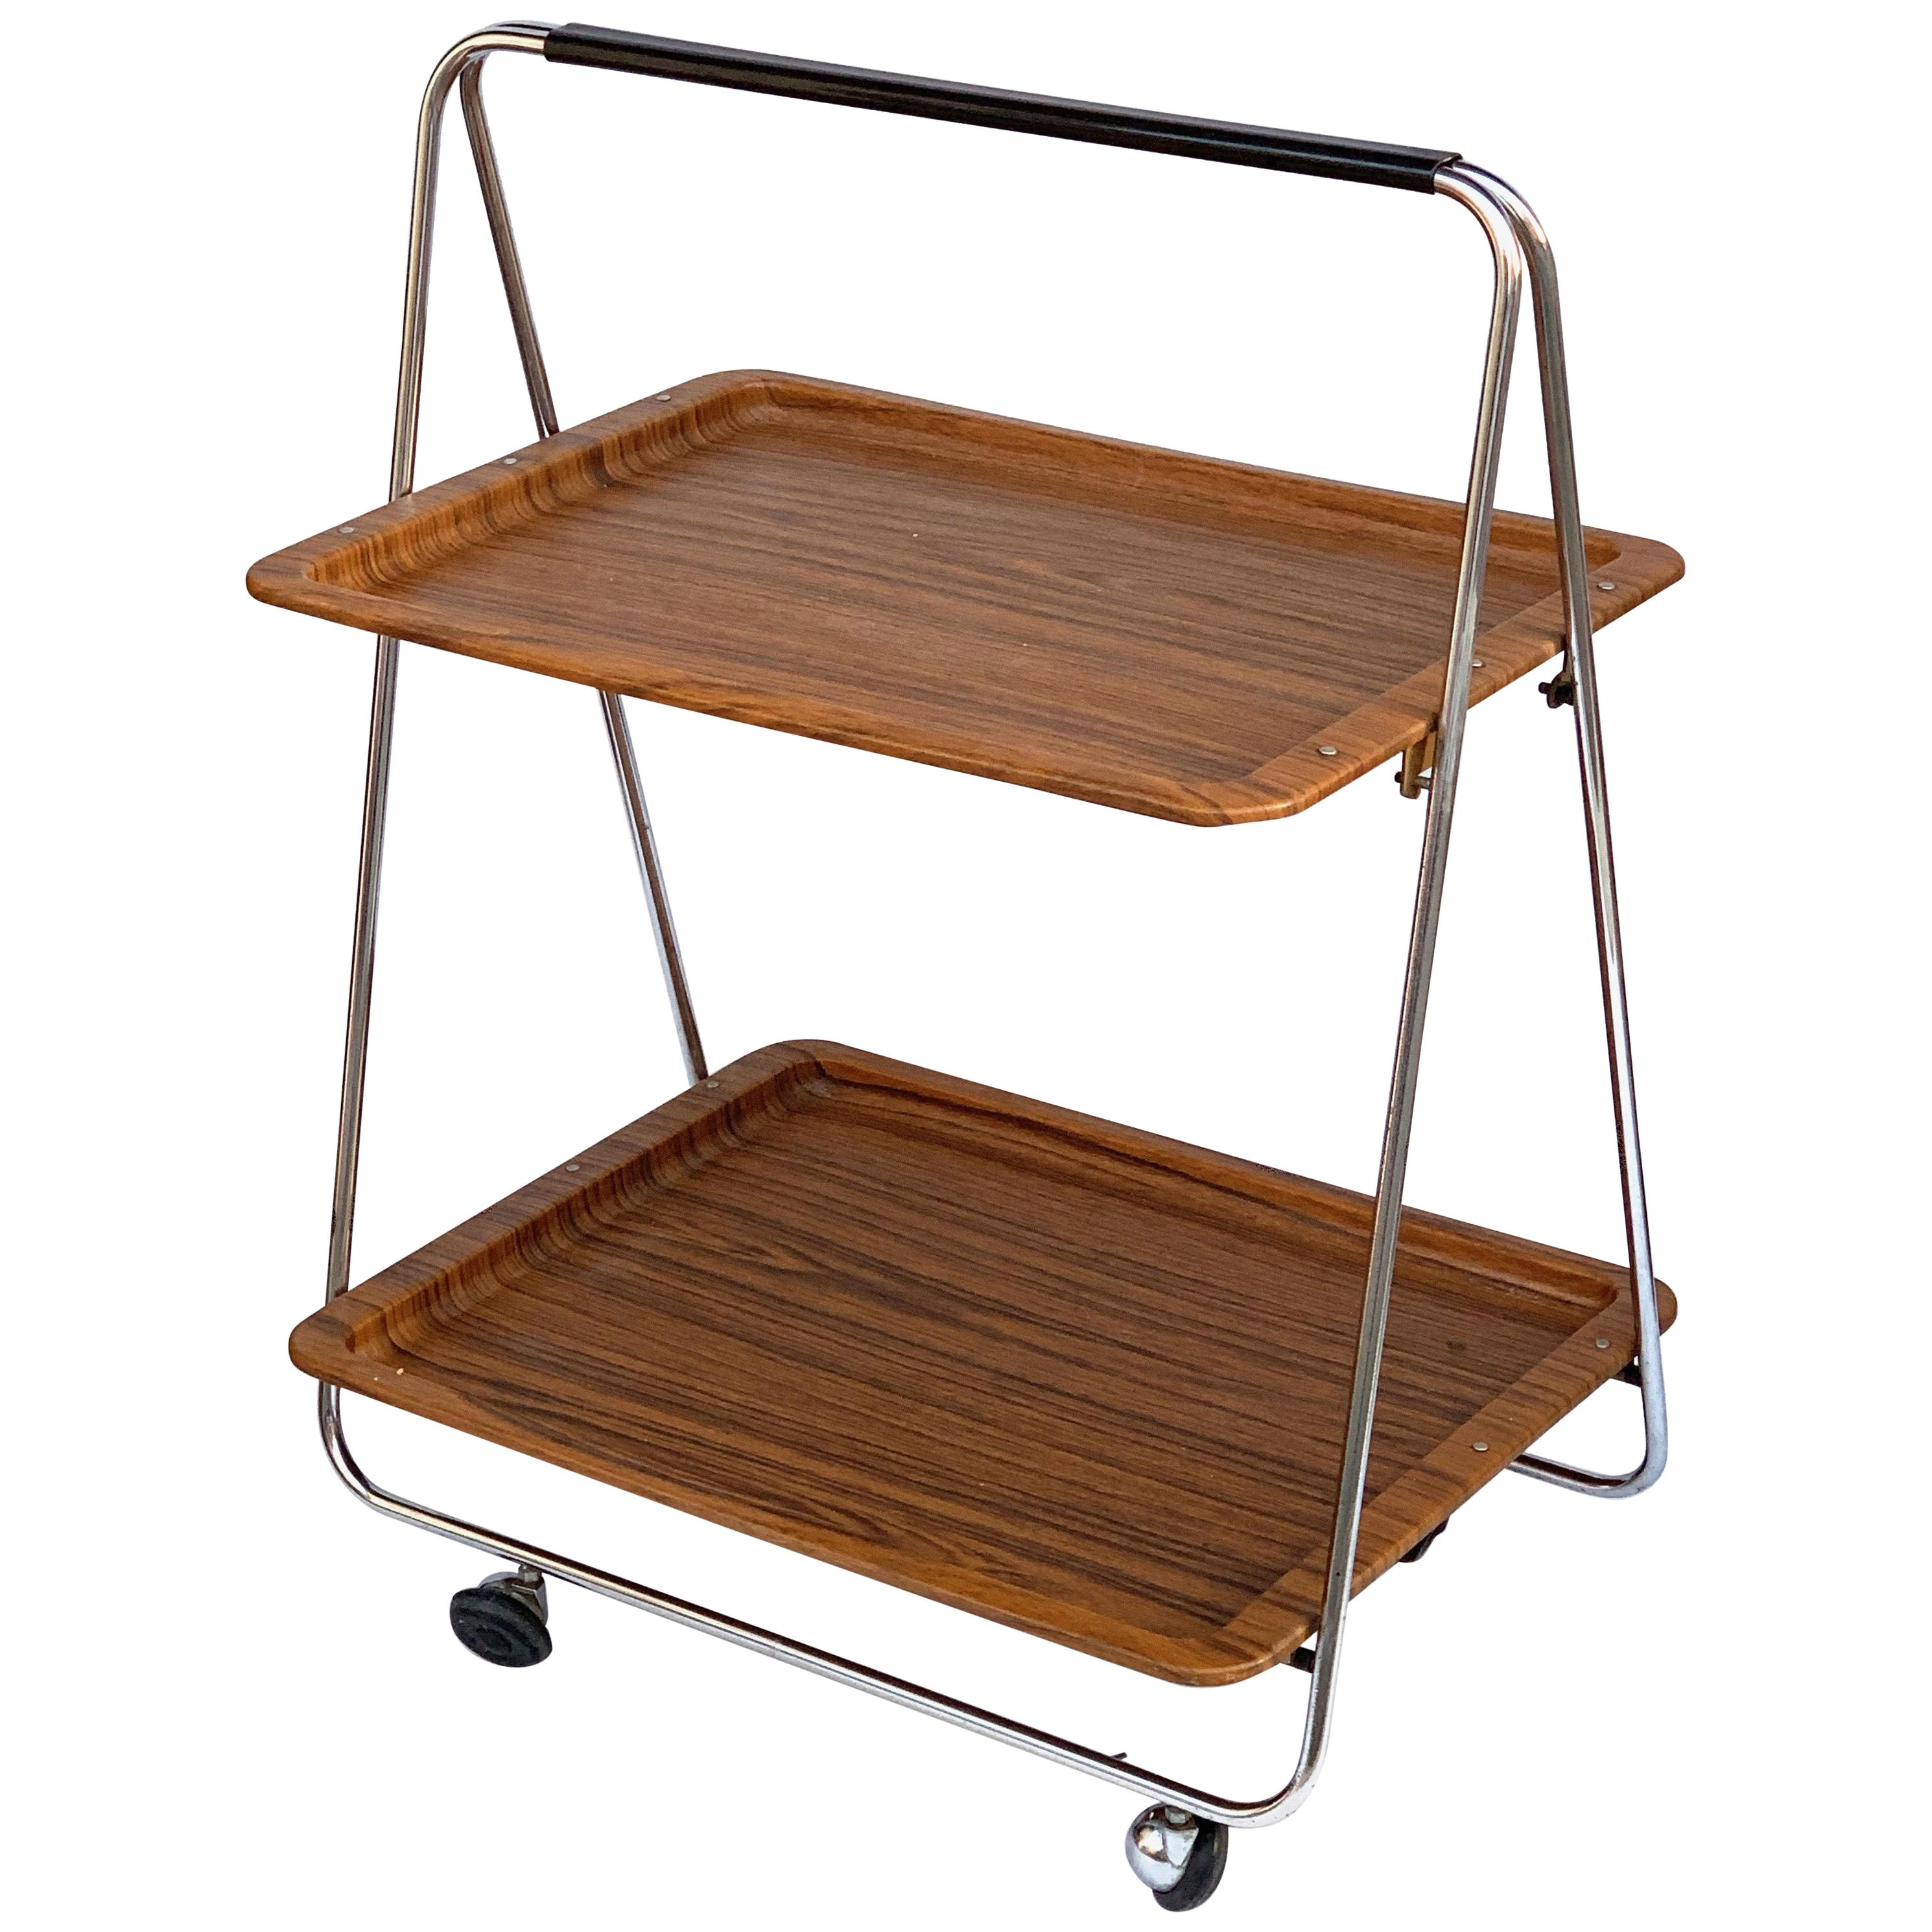 Bar Cart Folding Plastic Faux Wood and Chrome Metal by Robex, Italy, 1970s